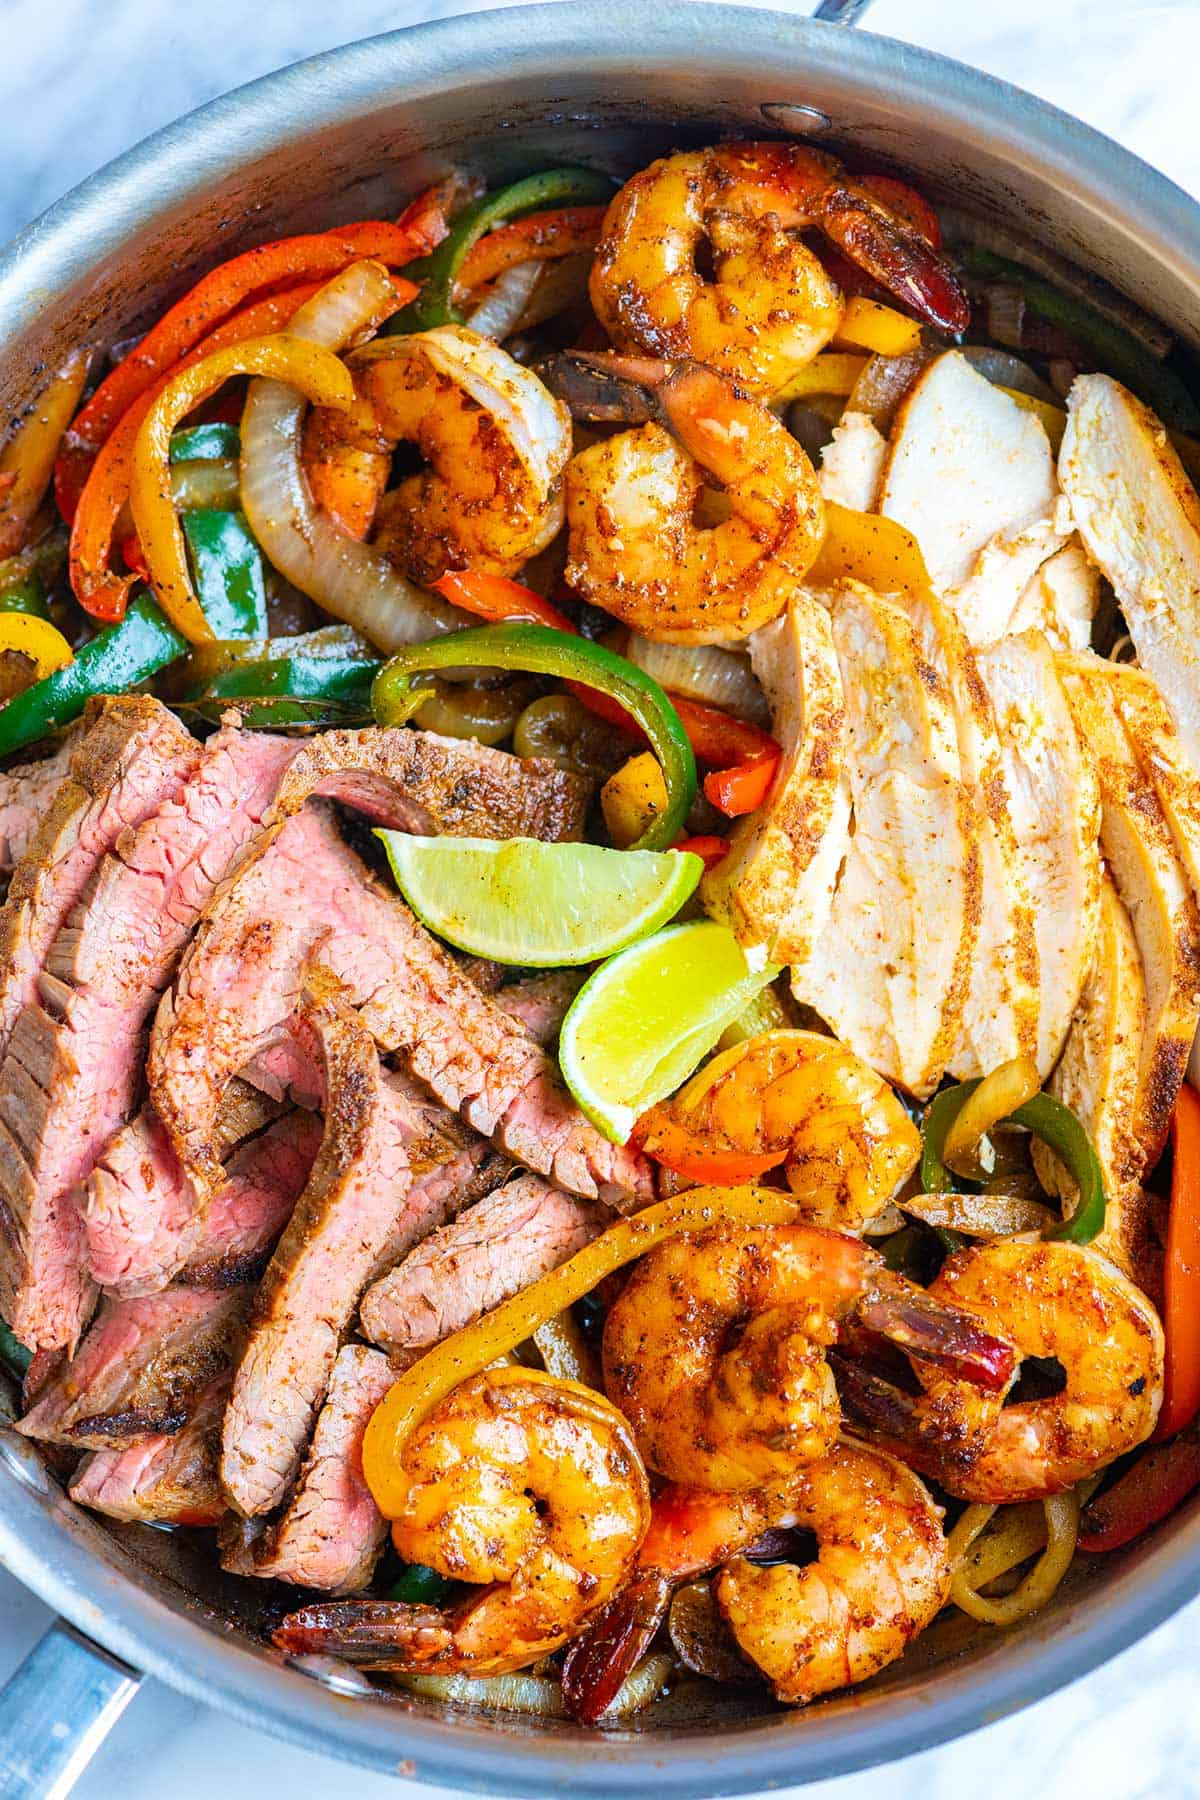 Steak, Chicken, and Shrimp fajitas cooked and ready to serve.